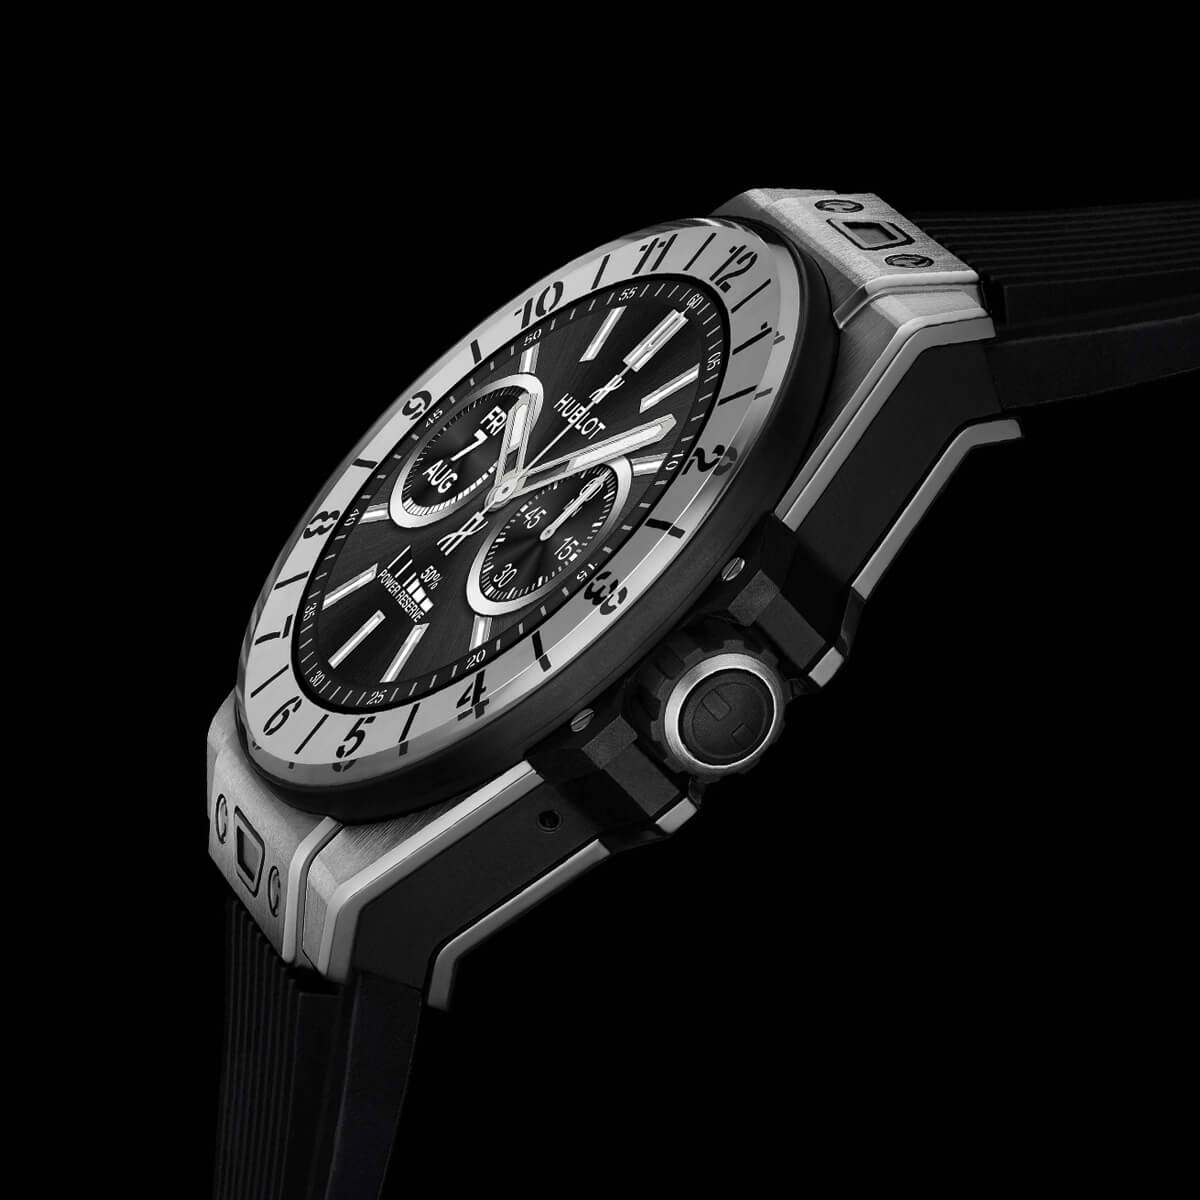 hublot-big-bang-e-8